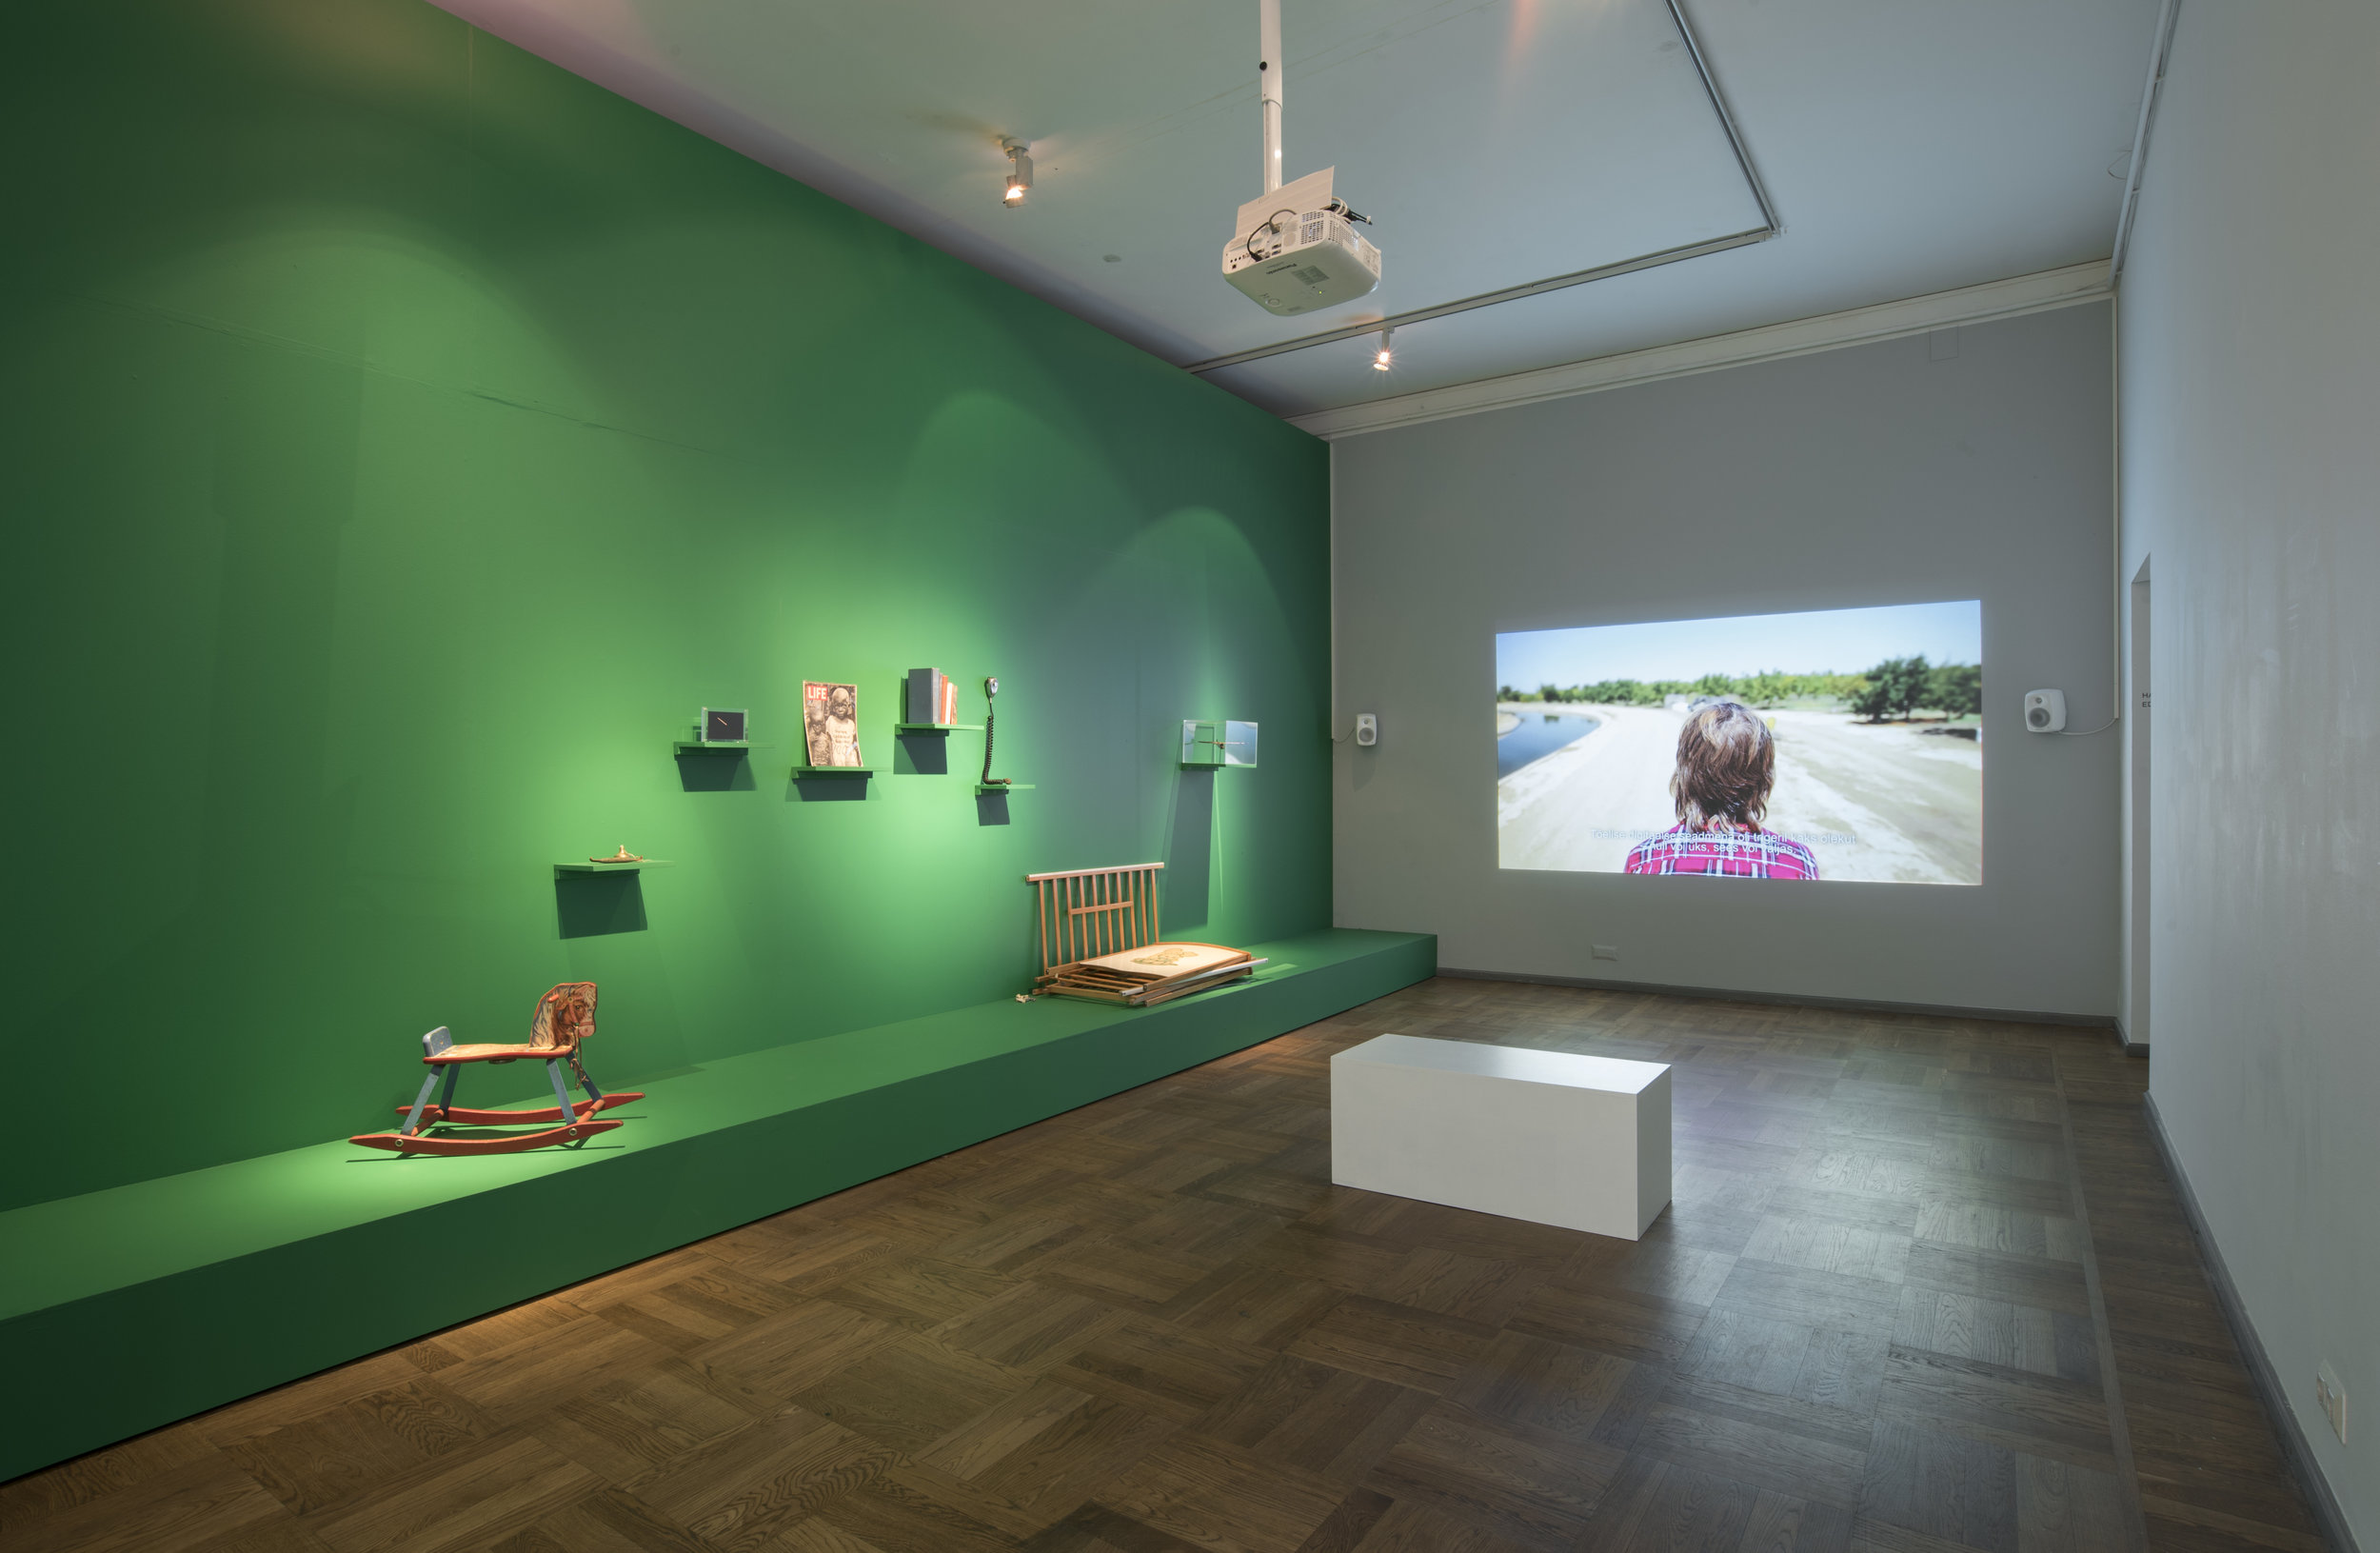 KB Installation view at TallinnKunstihoone 1, 2013.jpg